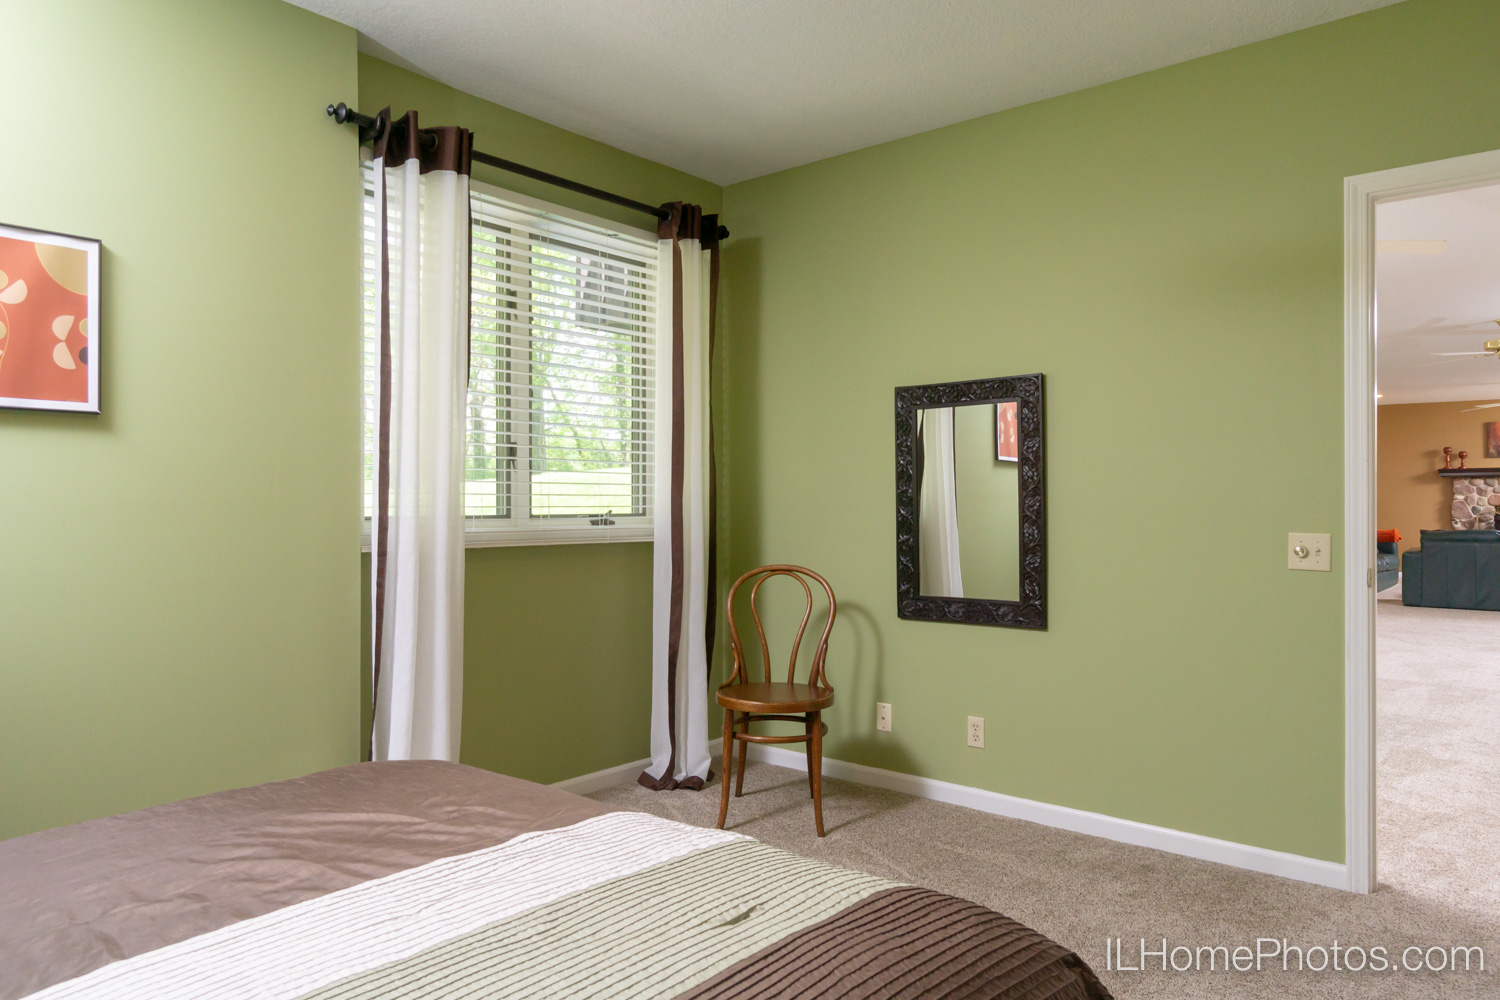 Interior bedroom photograph for real estate in Mt Zion, IL :: Illinois Home Photography by Michael Gowin, Lincoln, IL